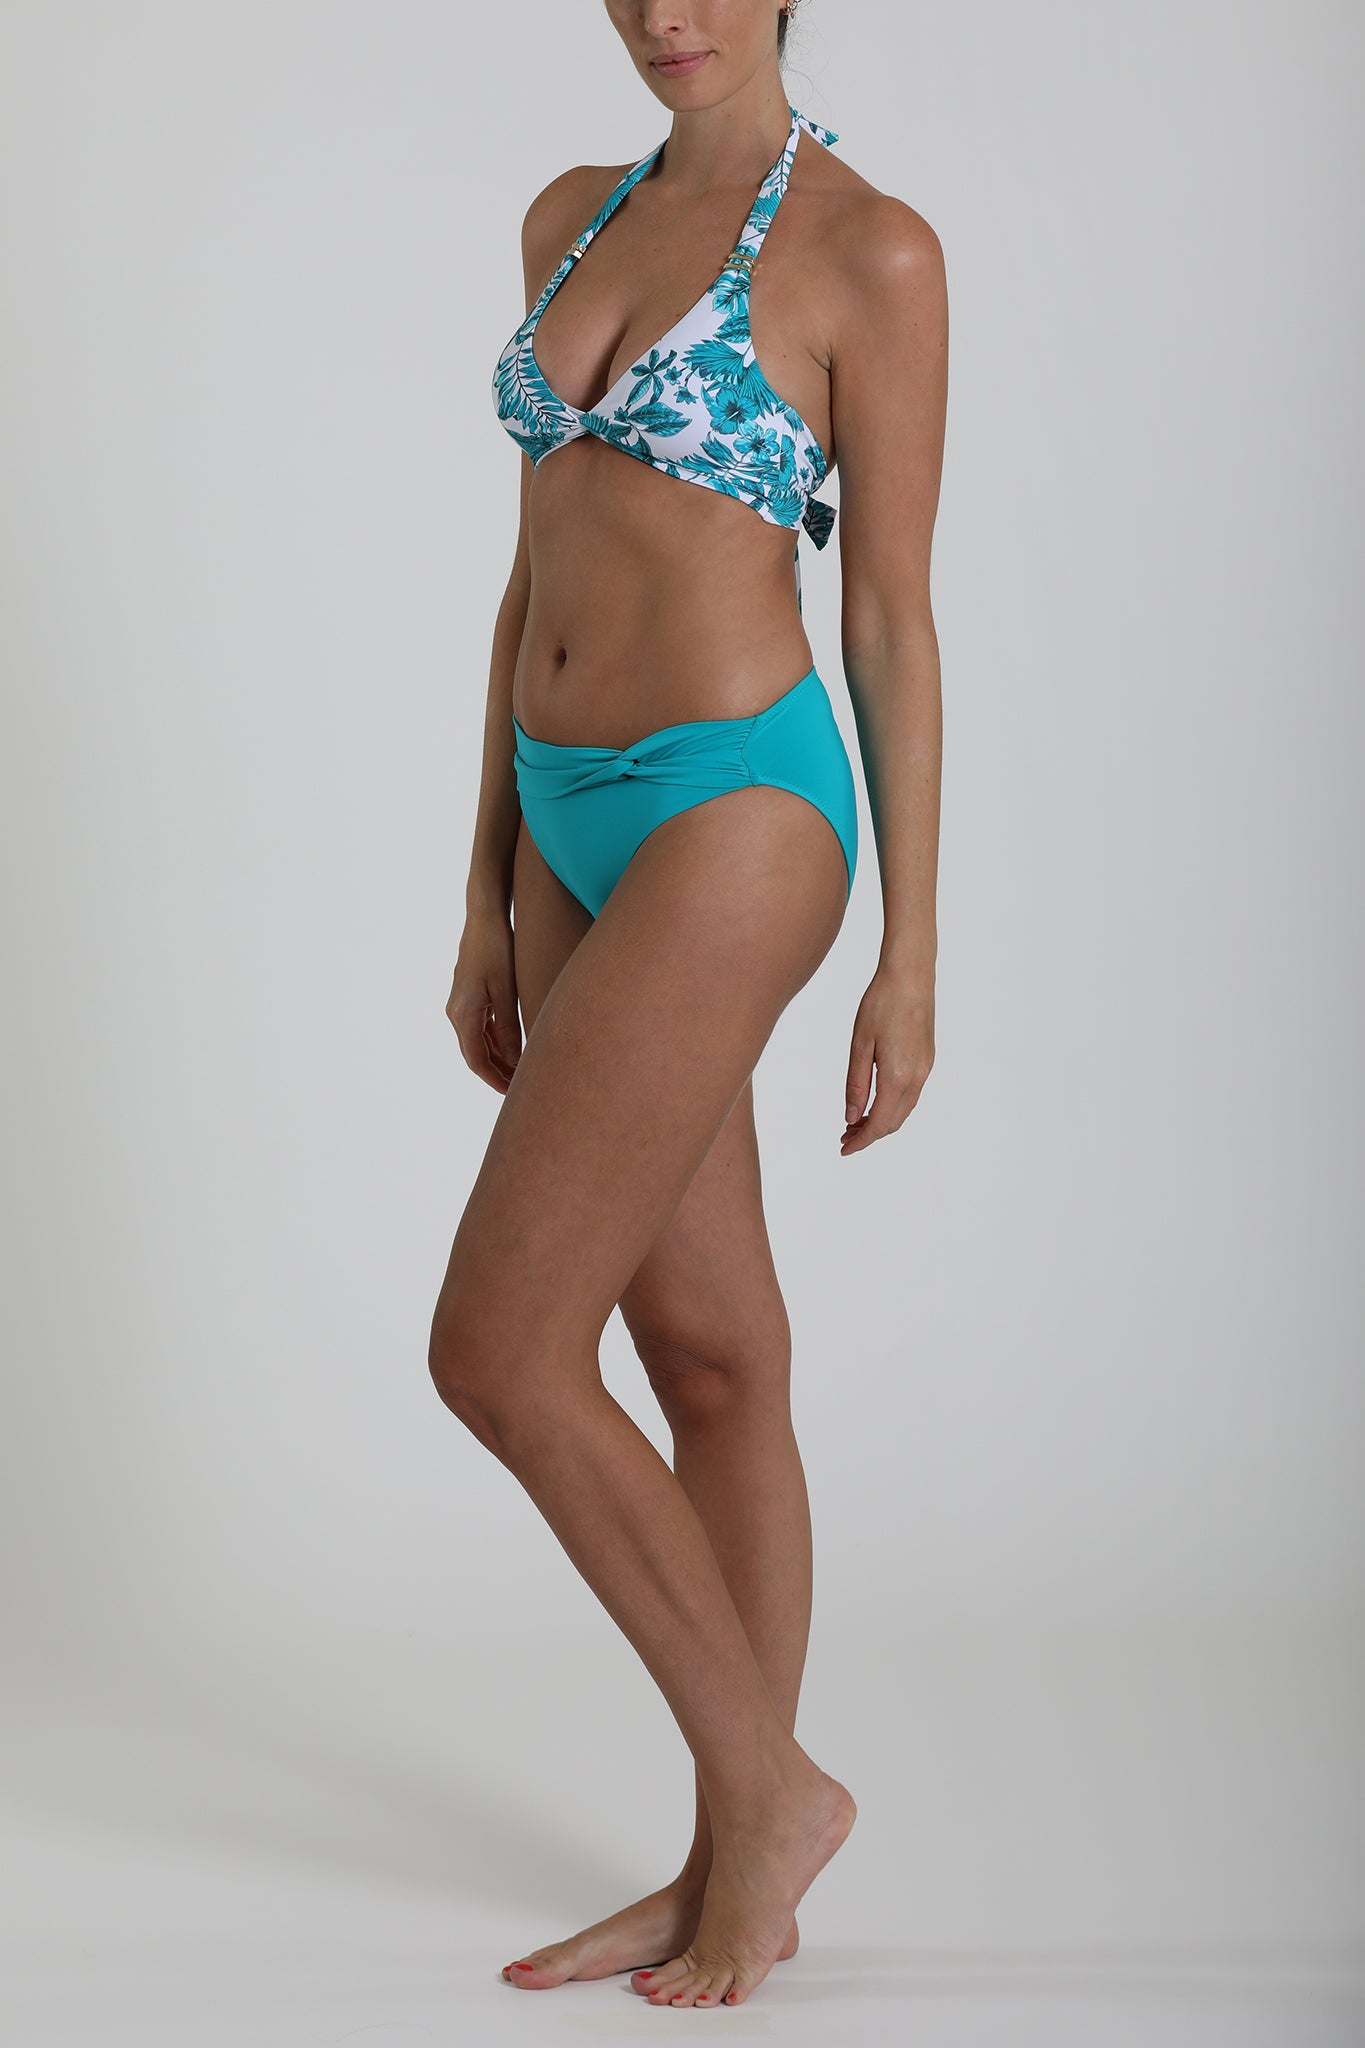 MALDIVES - Twist front detail swimwear bikini bottom - Turquoise